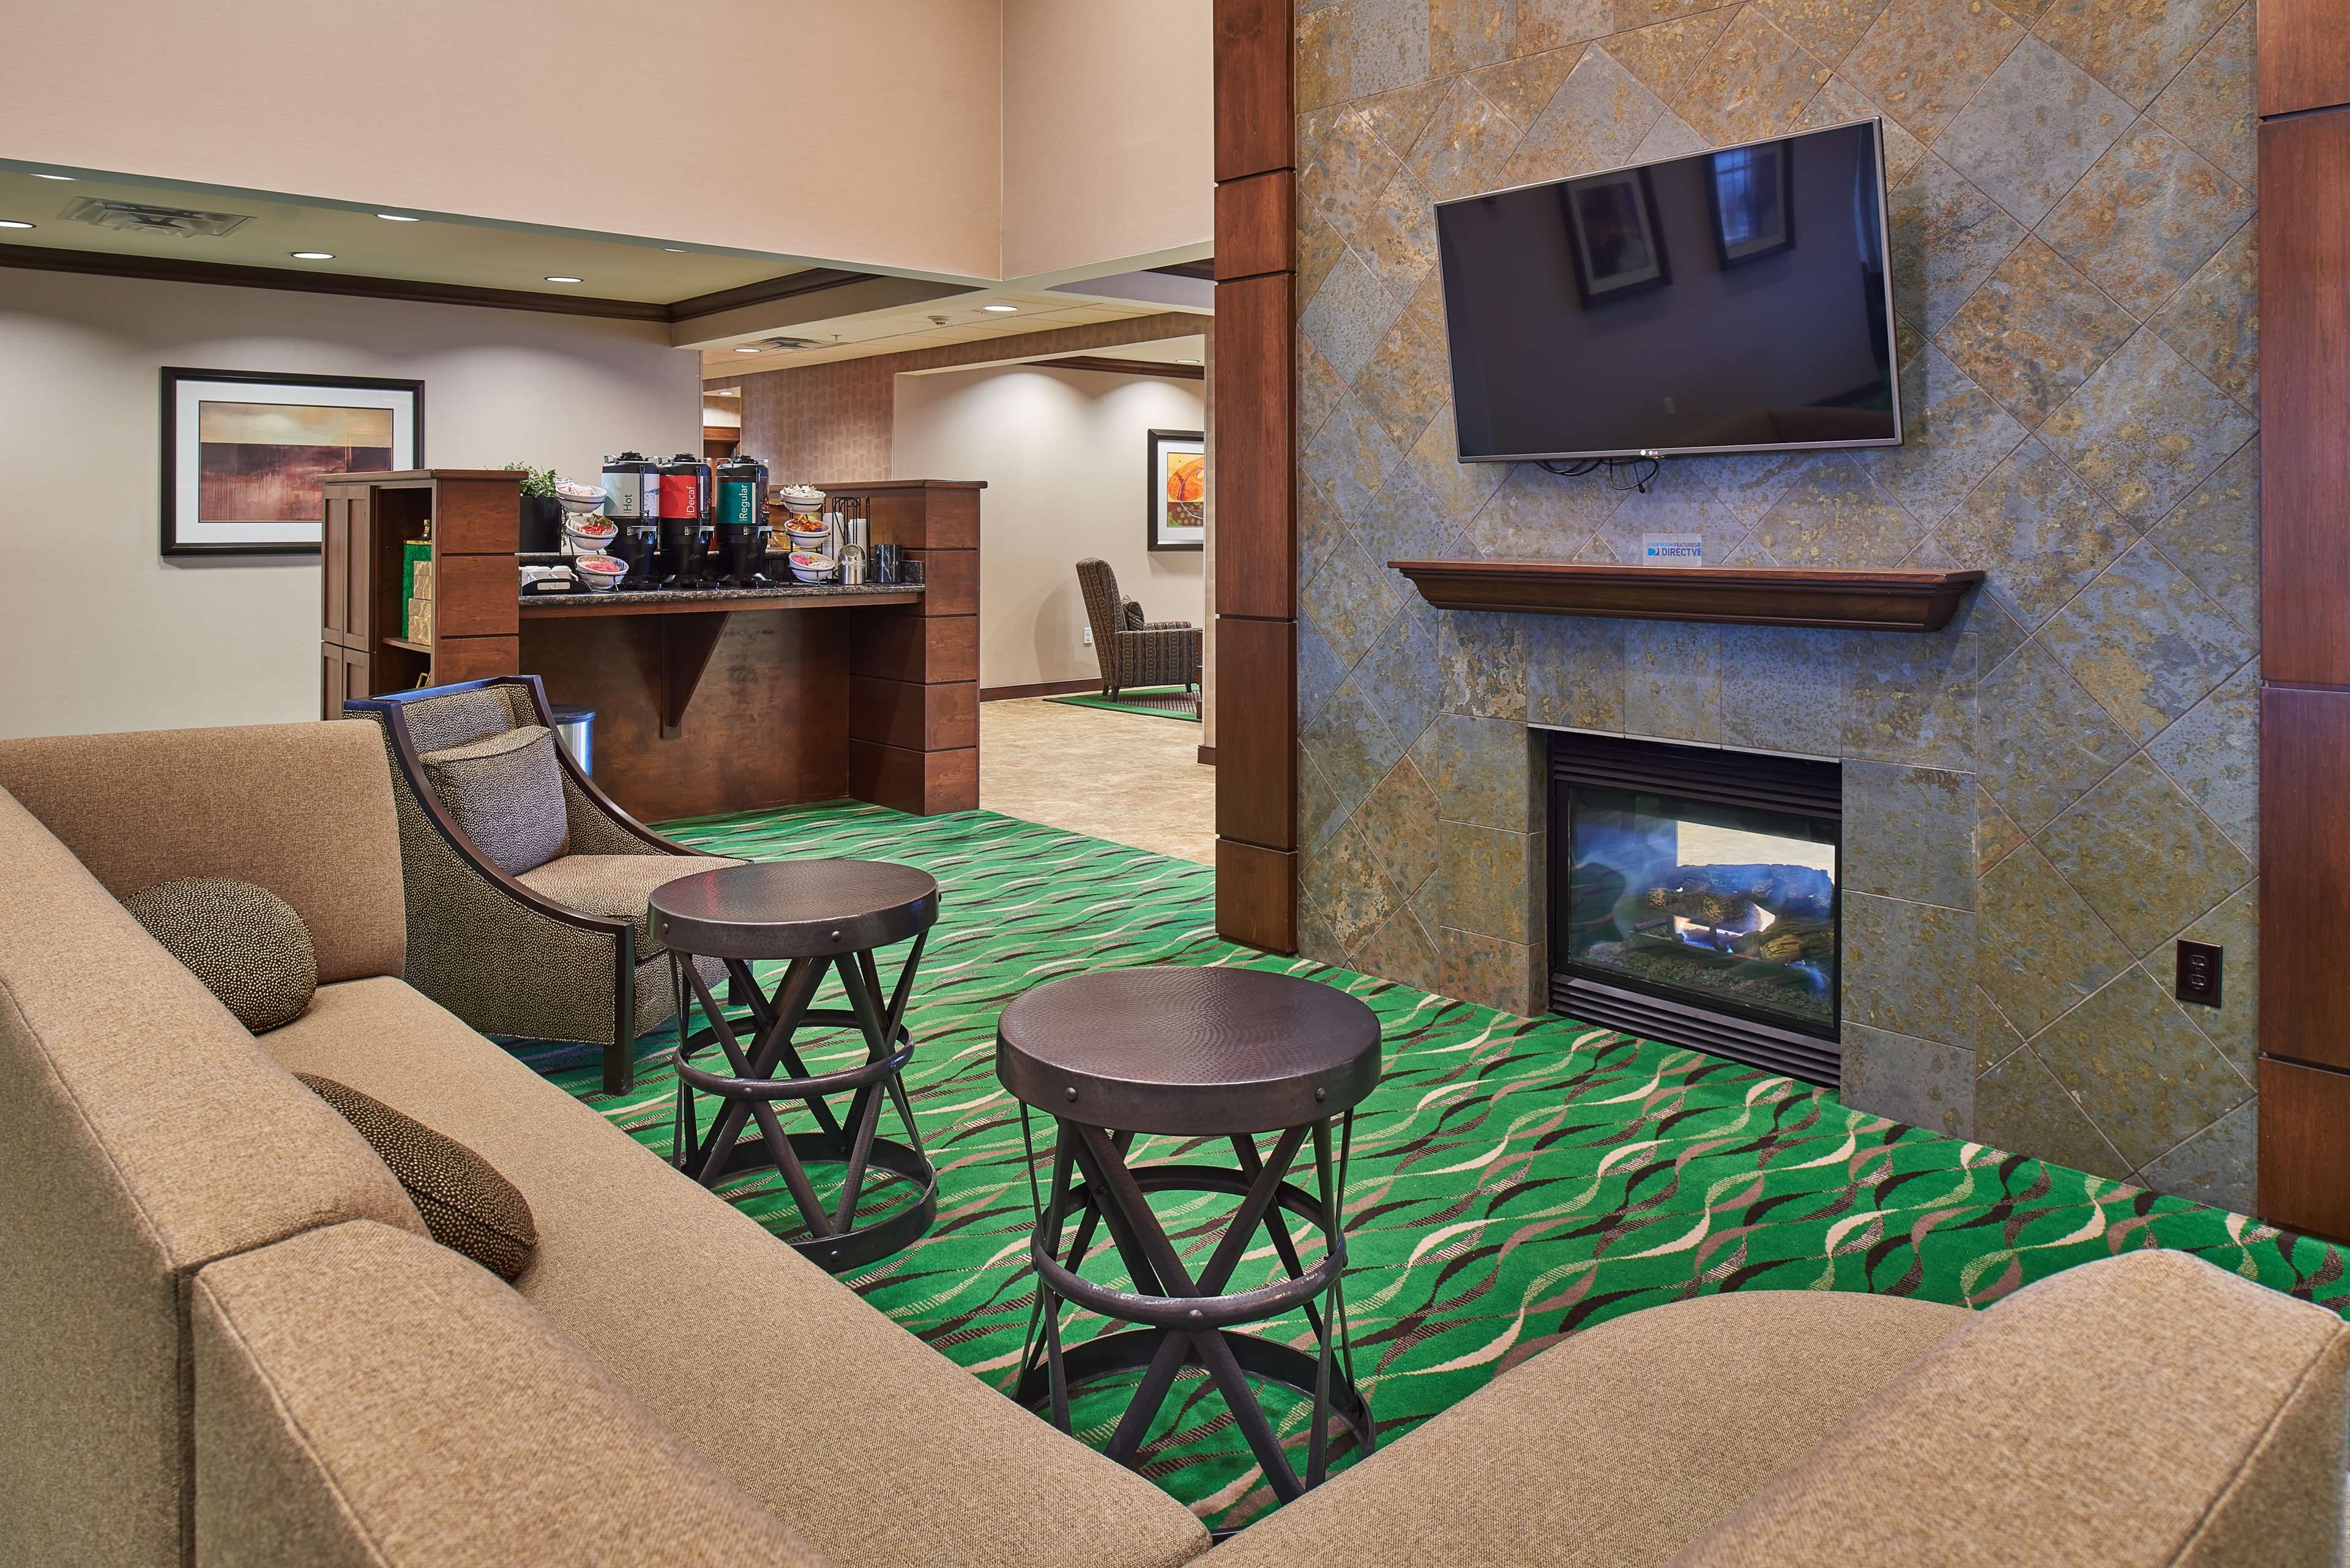 Homewood Suites by Hilton Odessa image 2